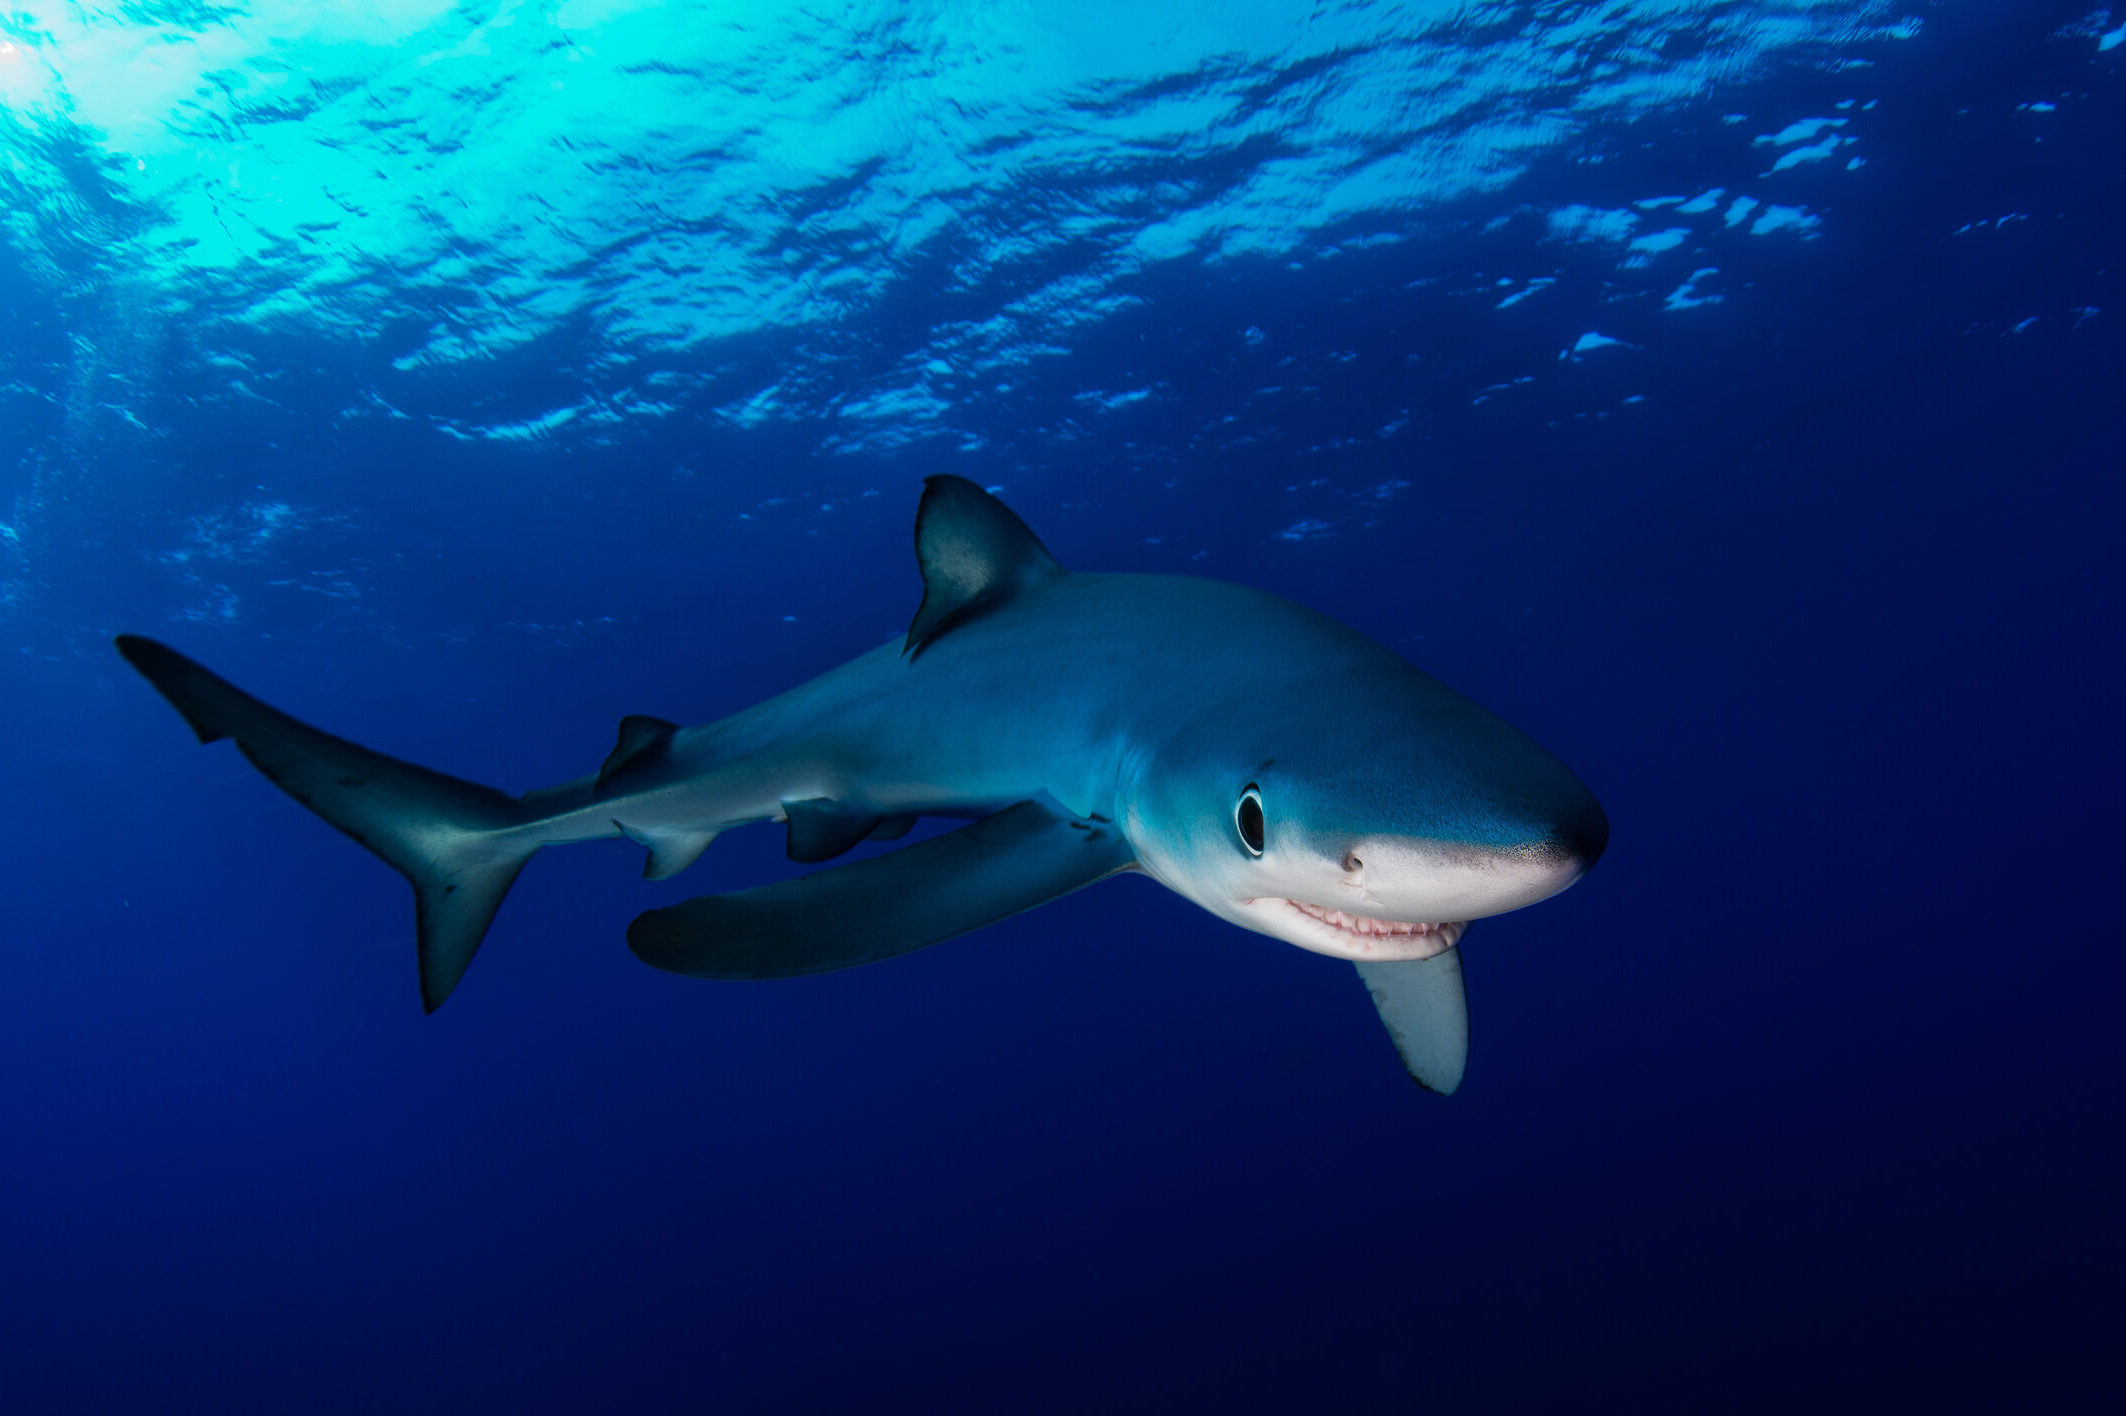 A close up of a blue shark swimming in shallow water towards the camera